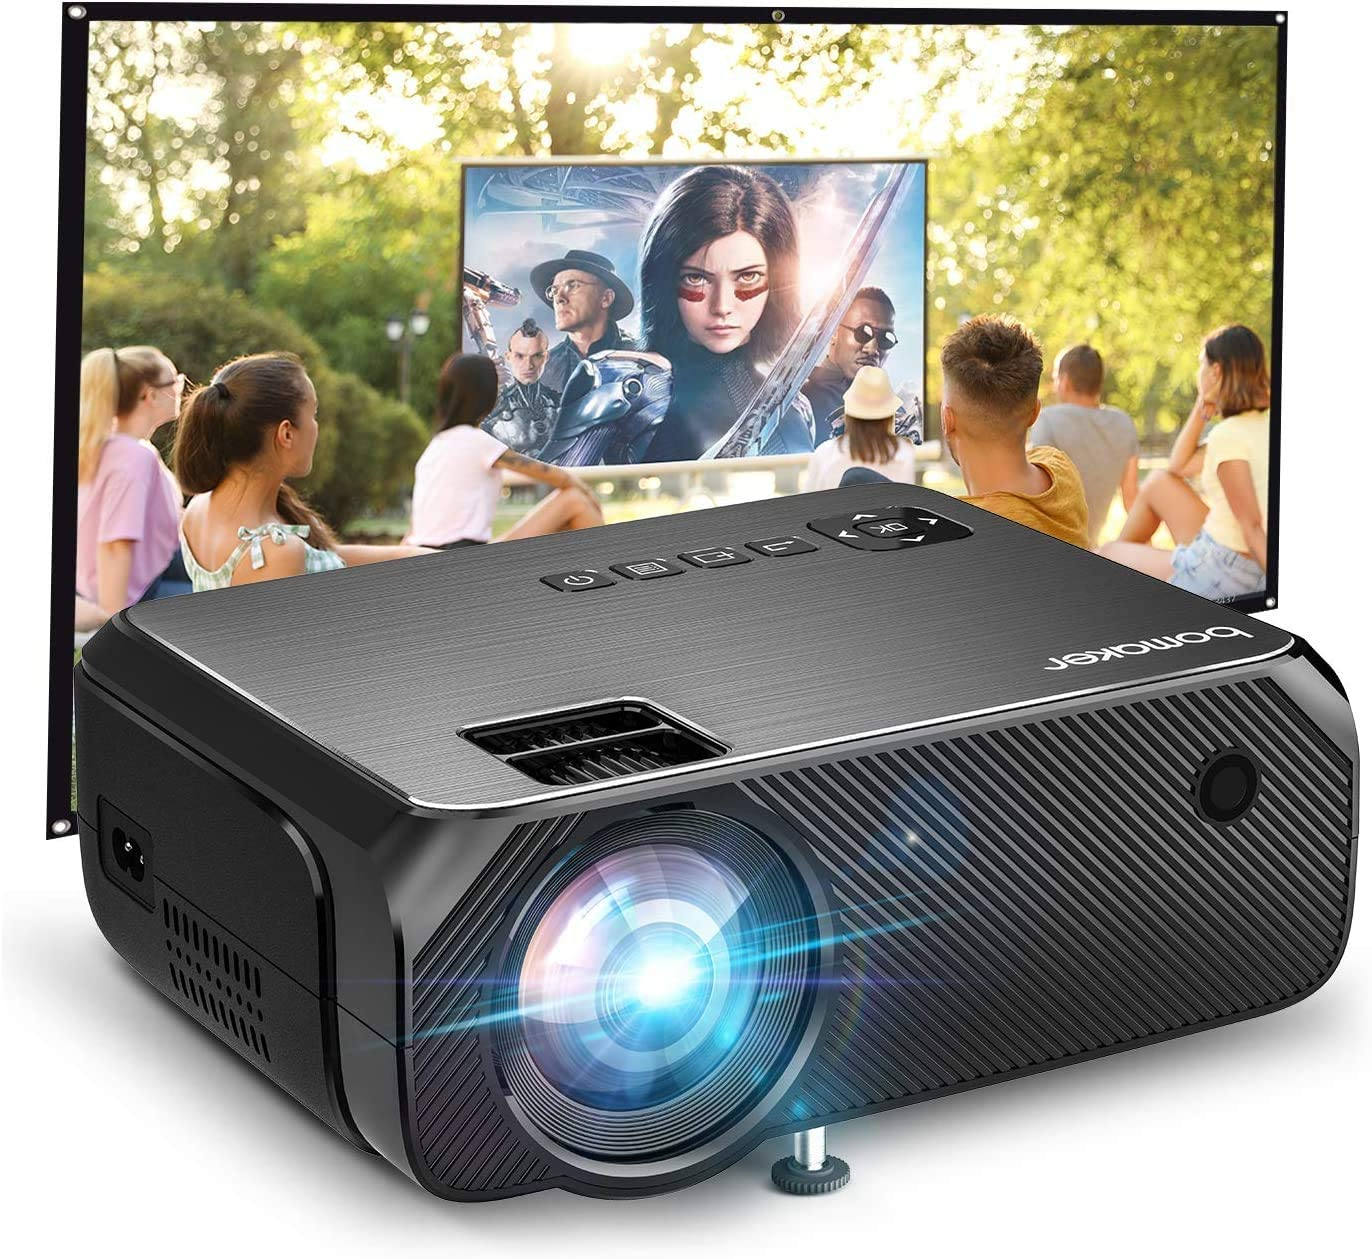 BOMAKER 720P WiFi Projector 6000 lumens 300 inches